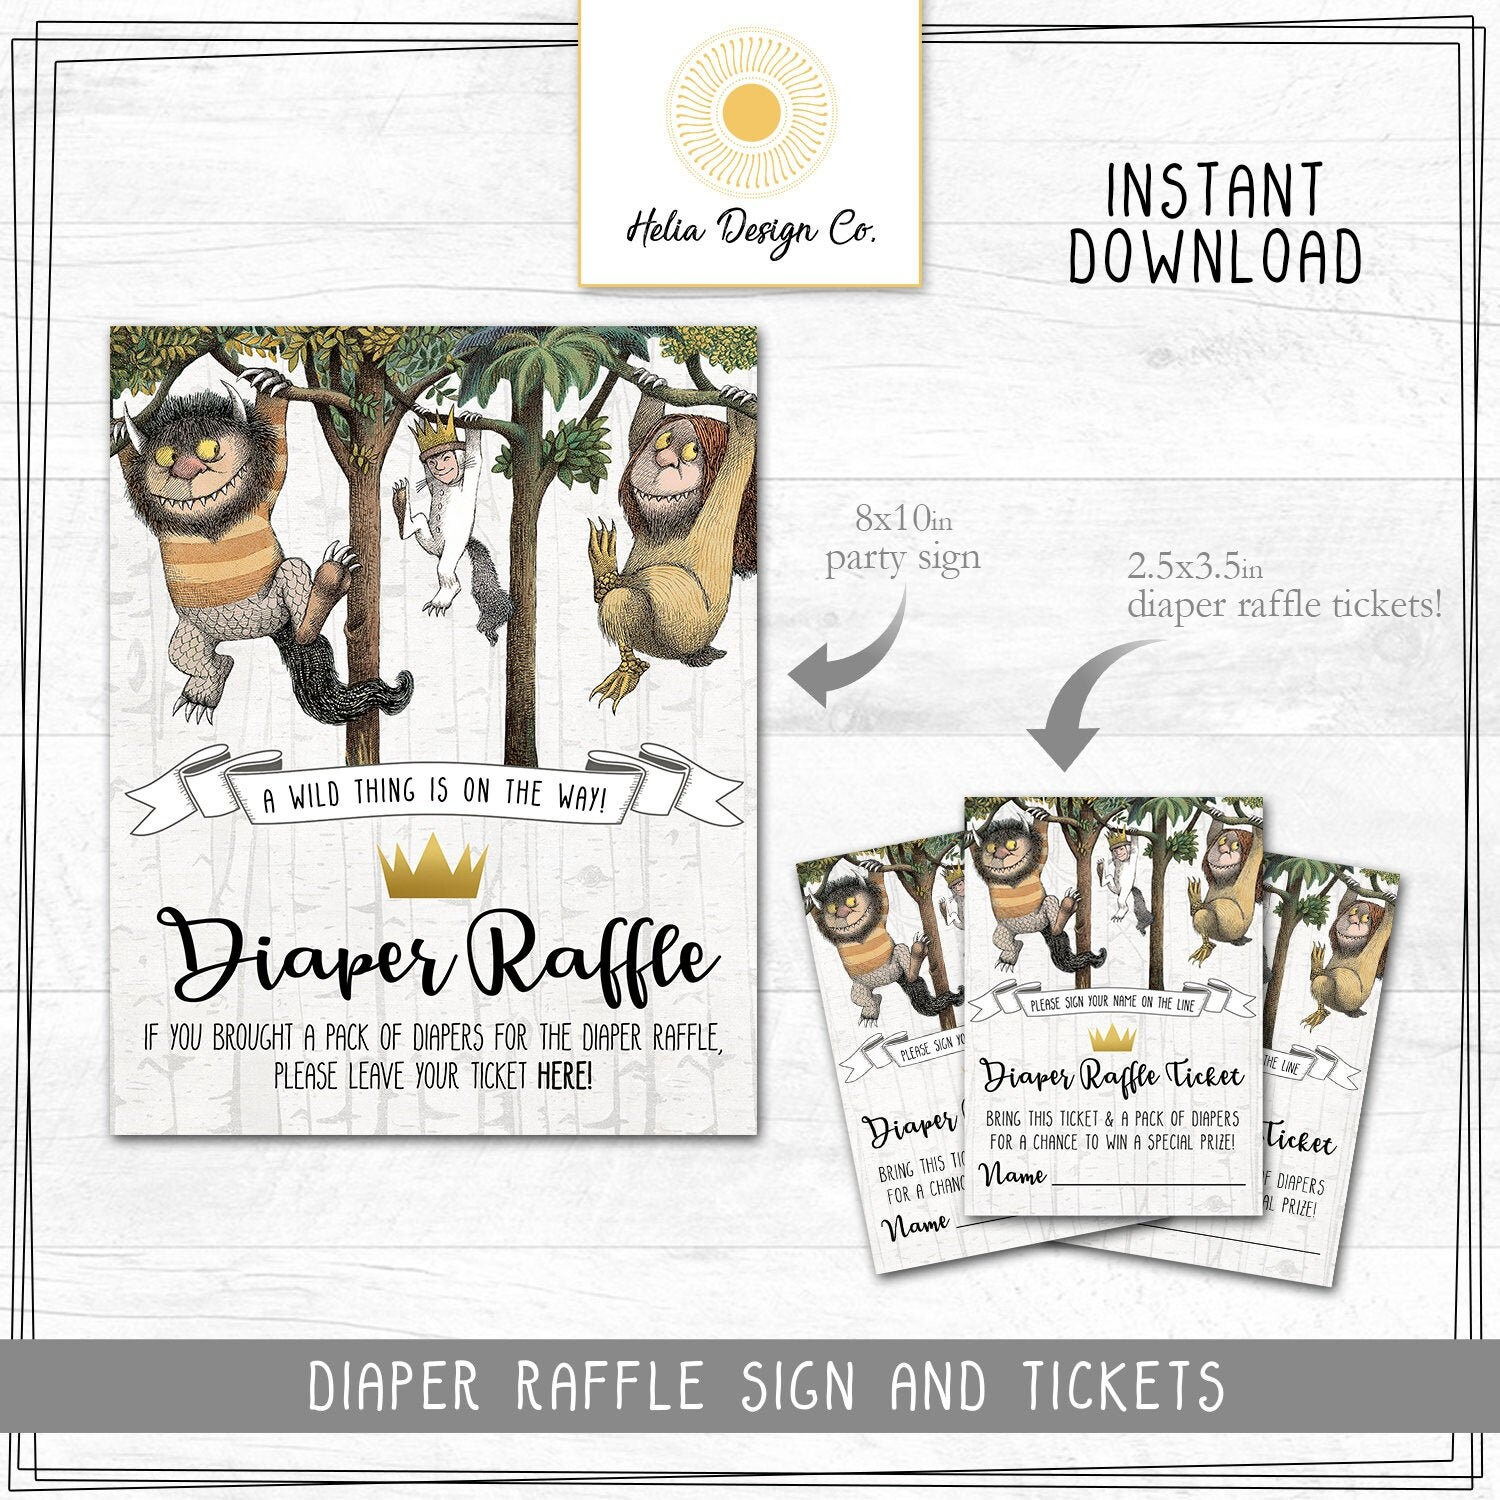 NEW! Diaper Raffle Tickets and Sign | Where the Wild Things Are | Baby  Shower | Instant Digital Download | Printable DIY